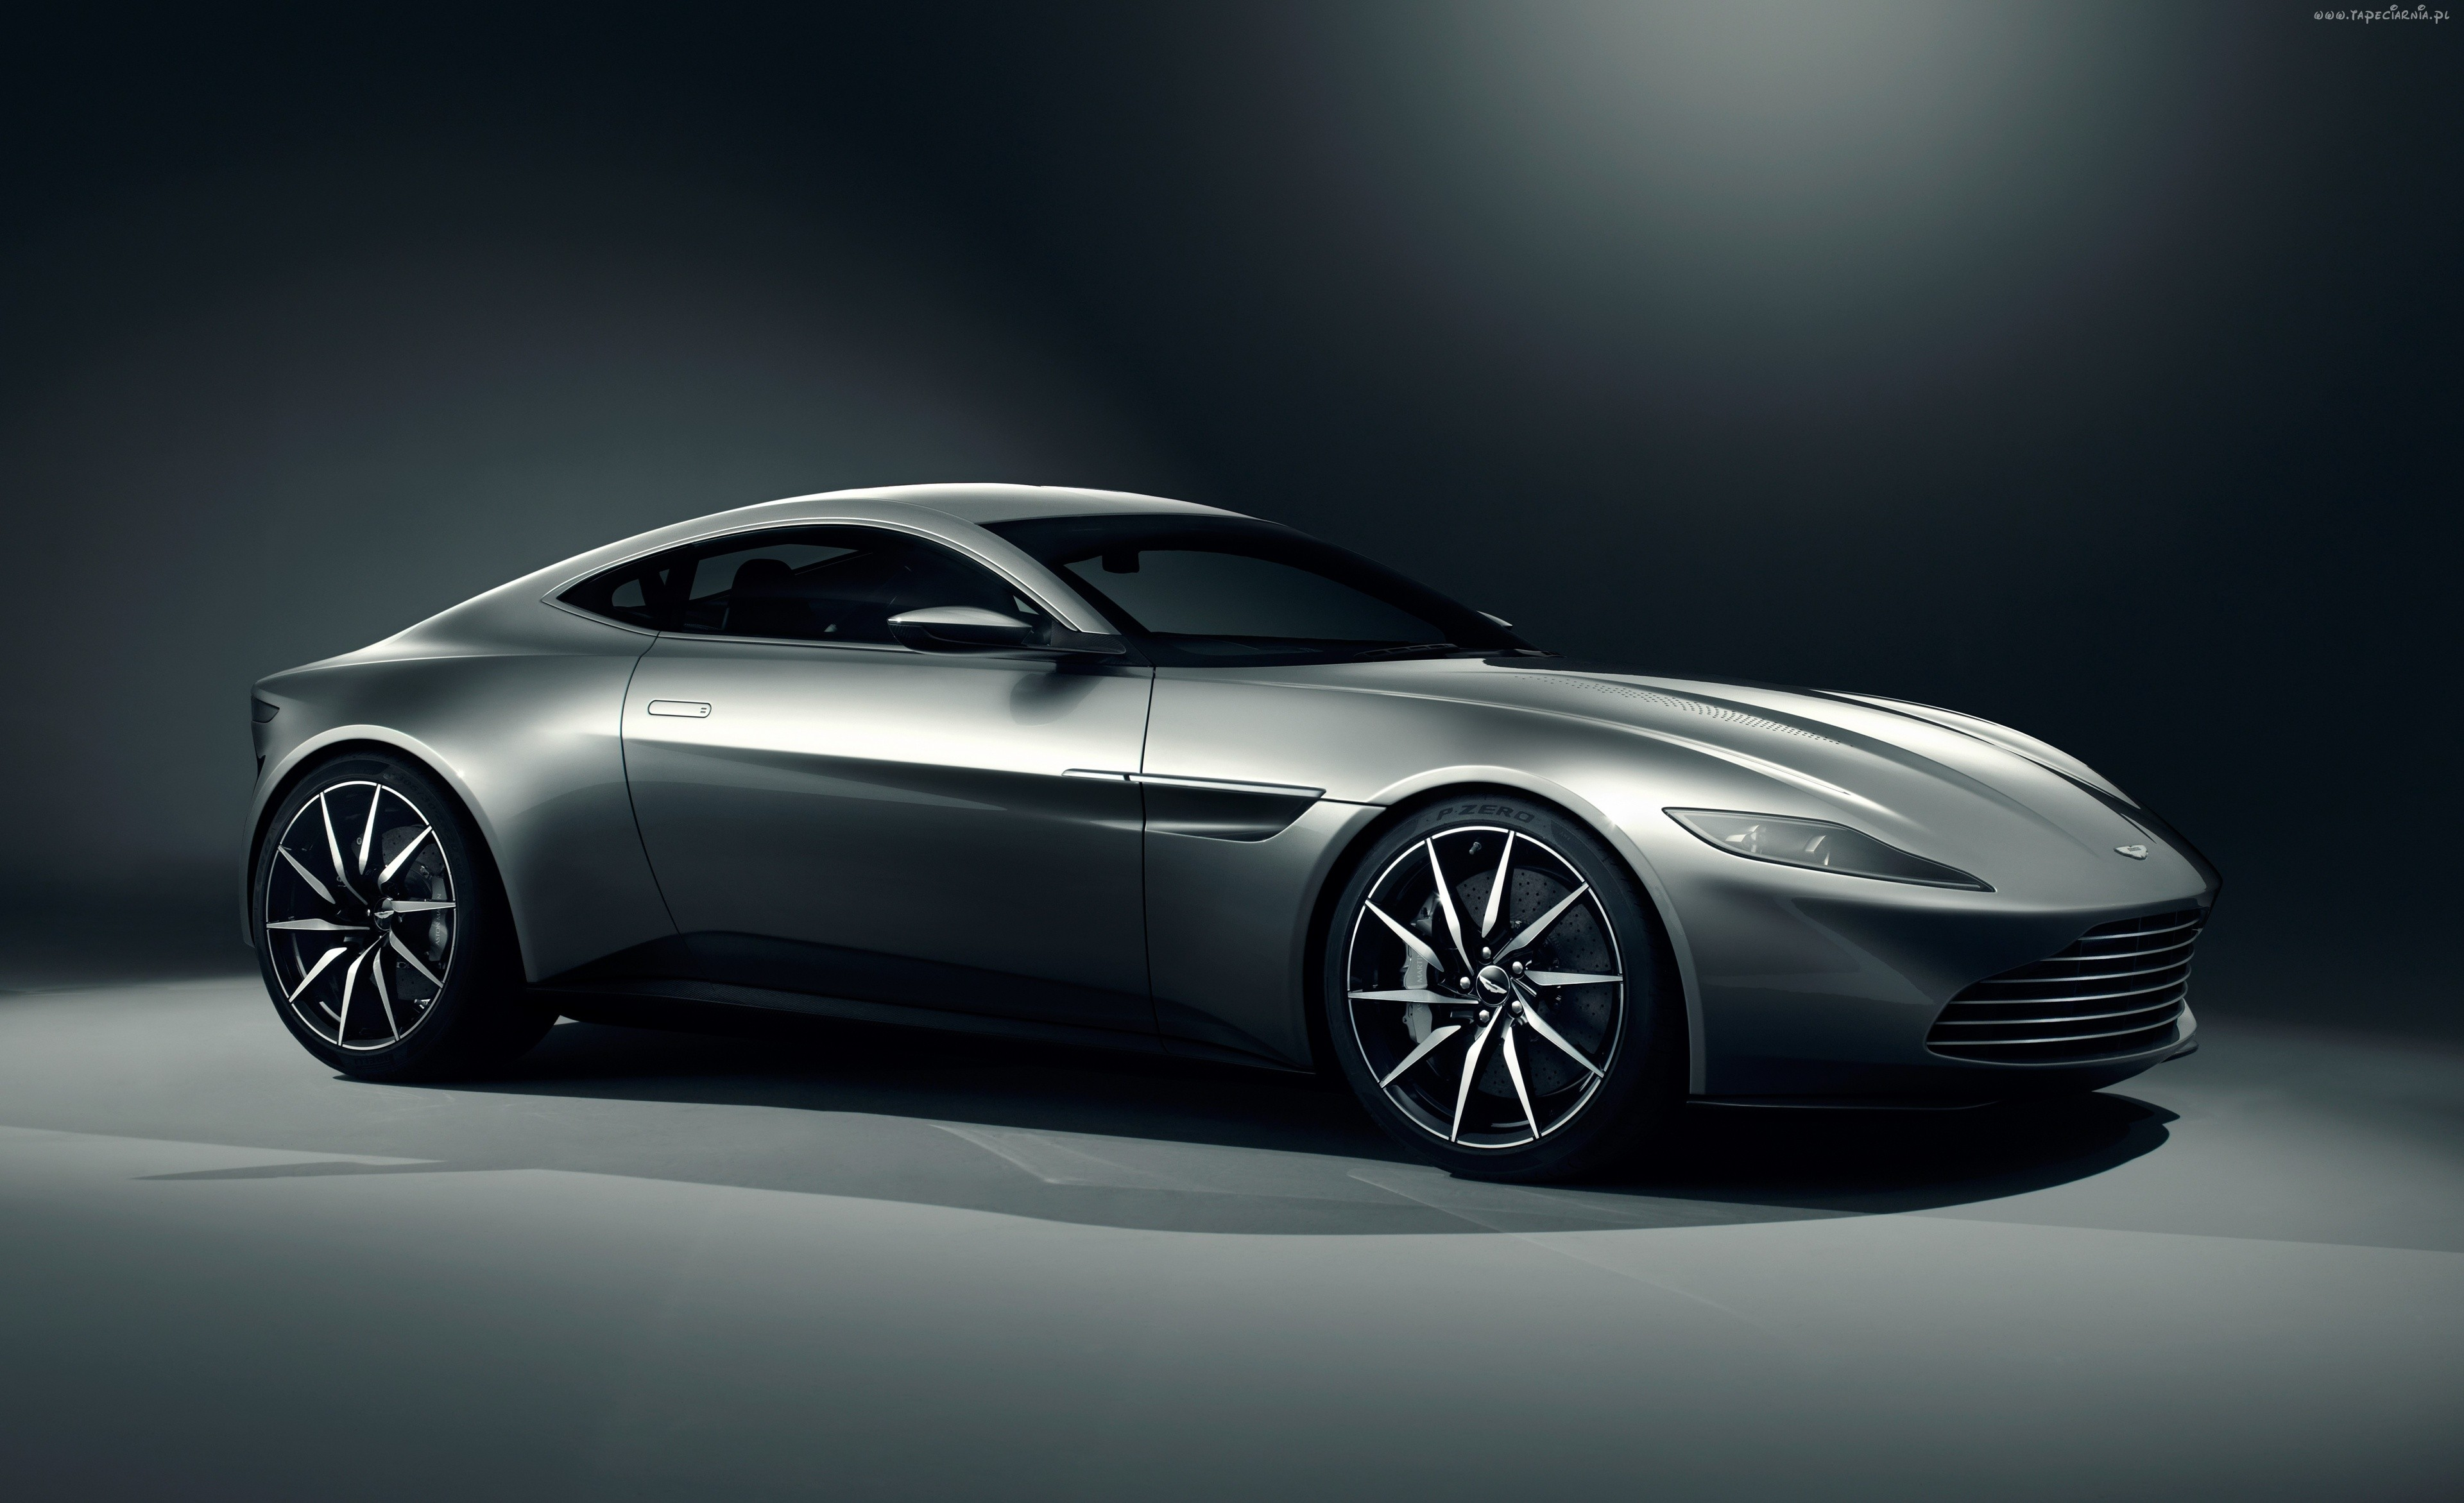 2017 Aston Martin DB10 photo - 3